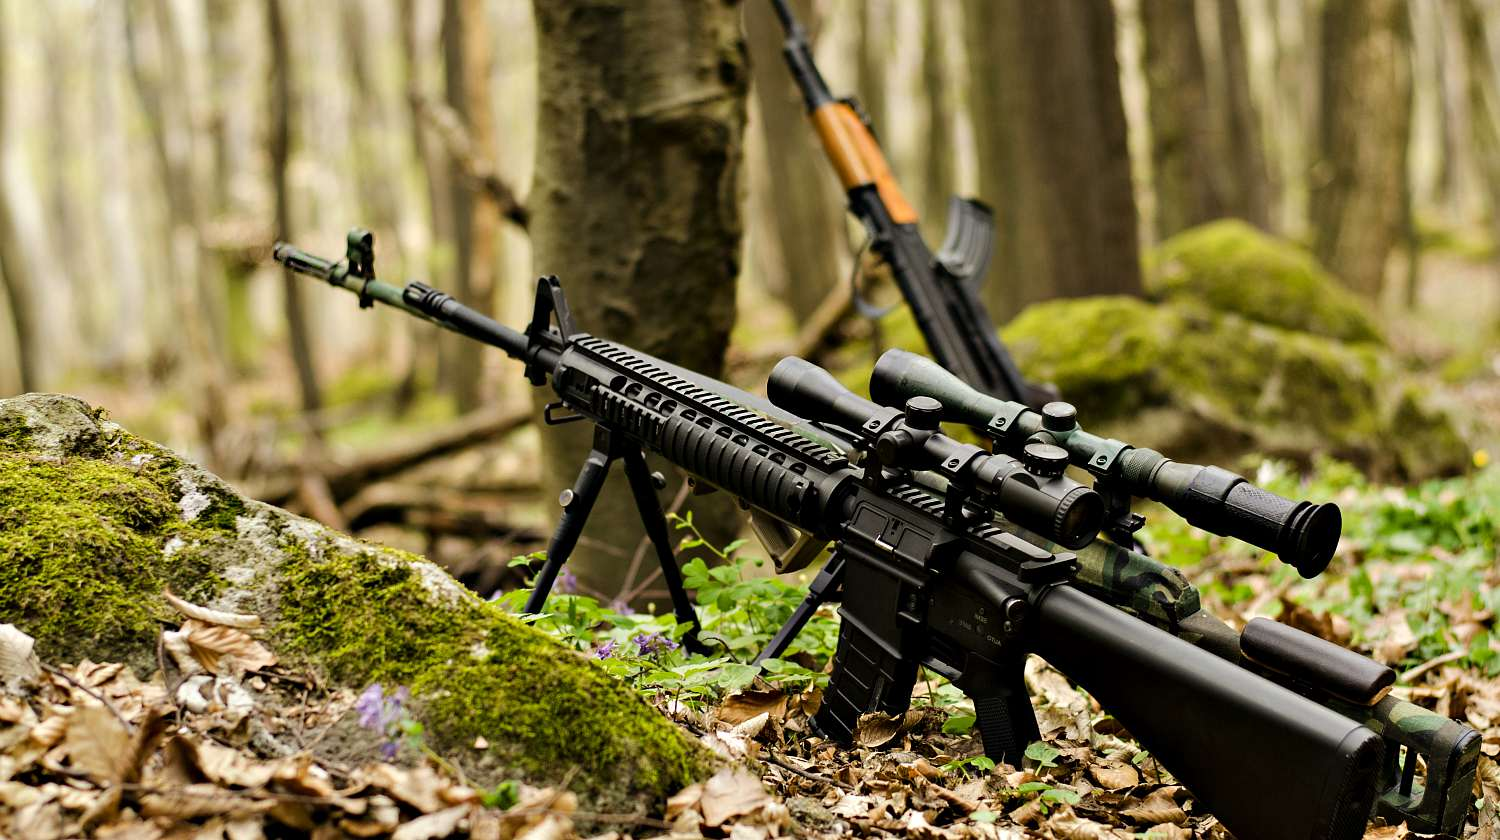 Featured | Sniper rifle on bipod on ground background | Sniper Rifle Facts | Things You Didn't Know About Sniper Rifles